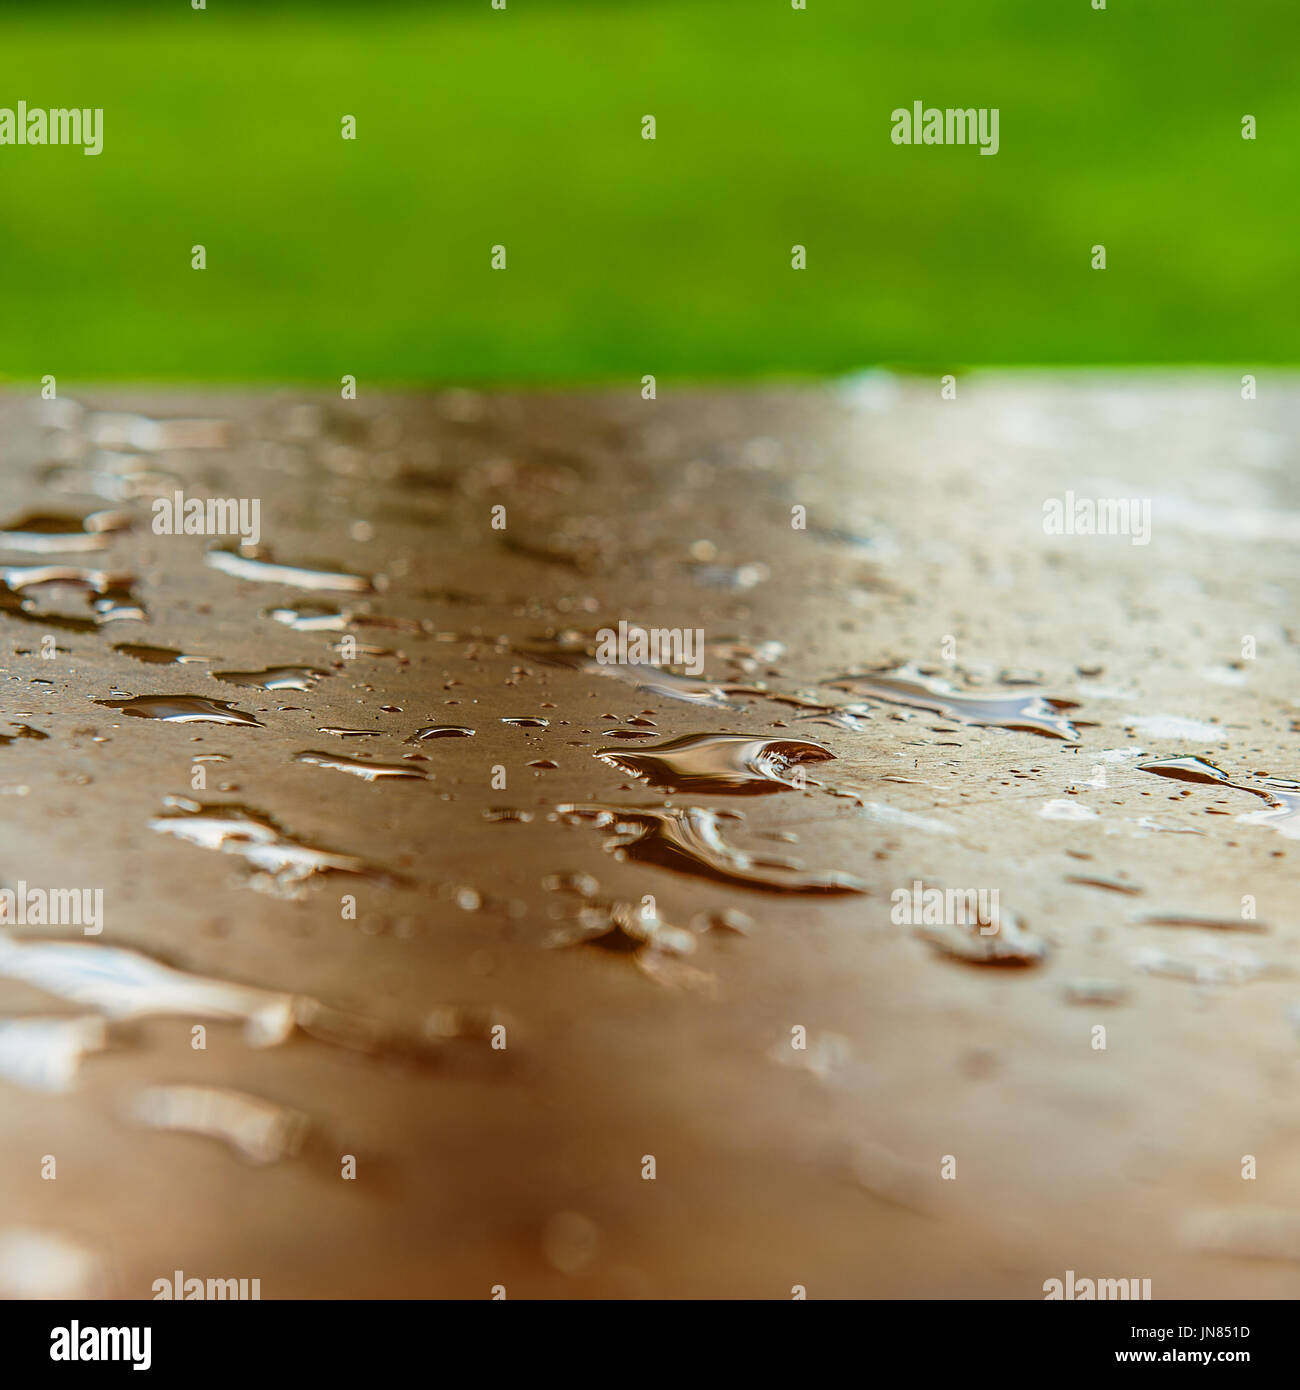 drop of water on the surface of the table and a blurred green background - Stock Image